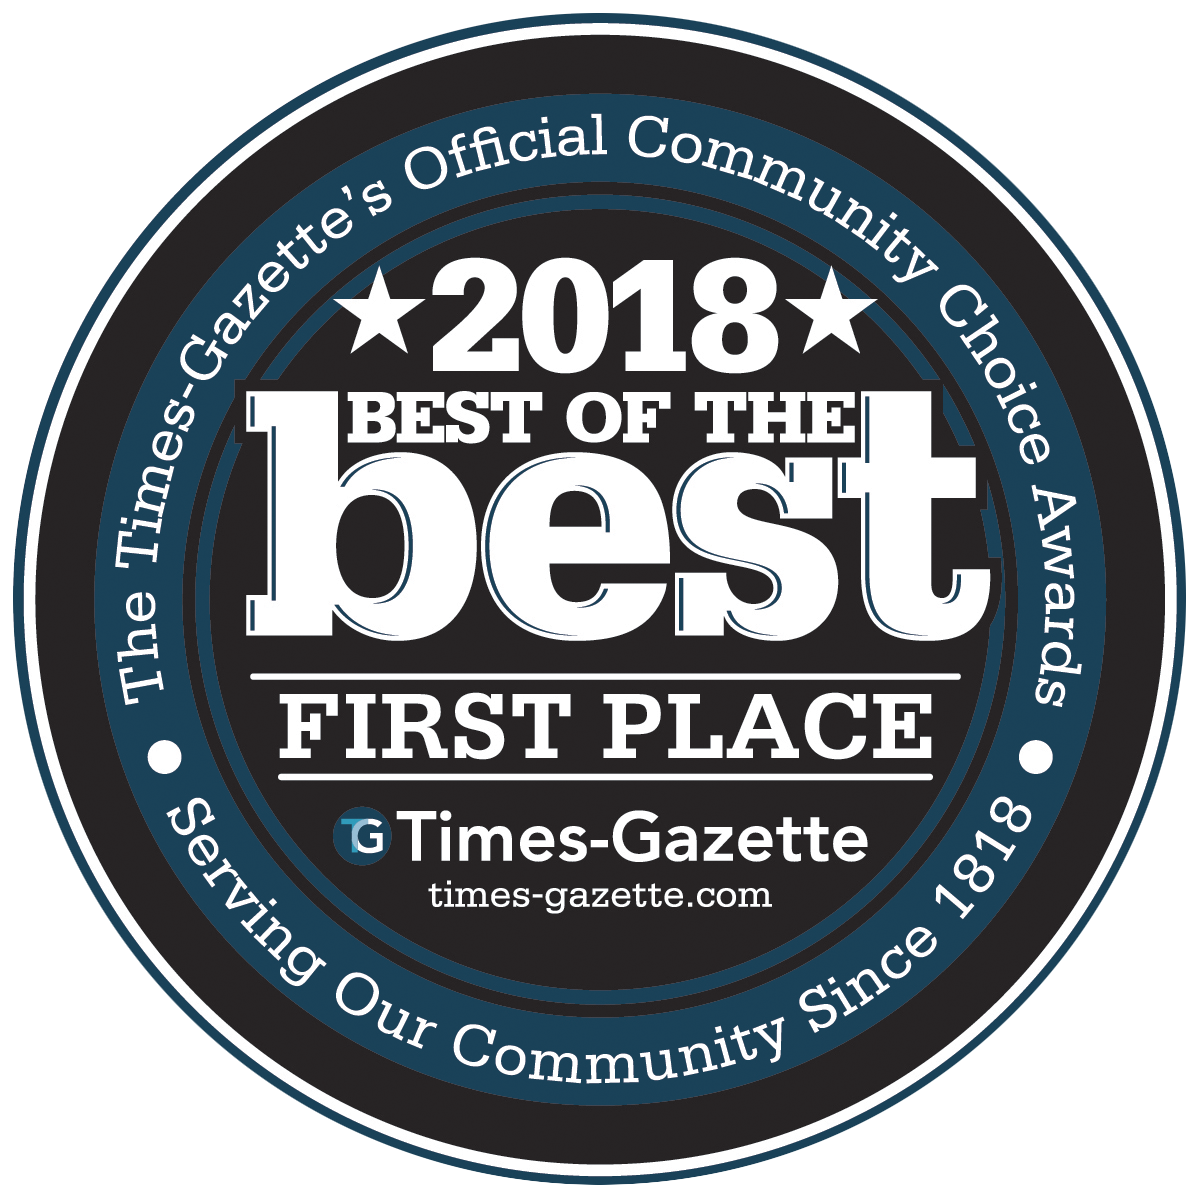 times gazette, best of best, community, zs hair designs